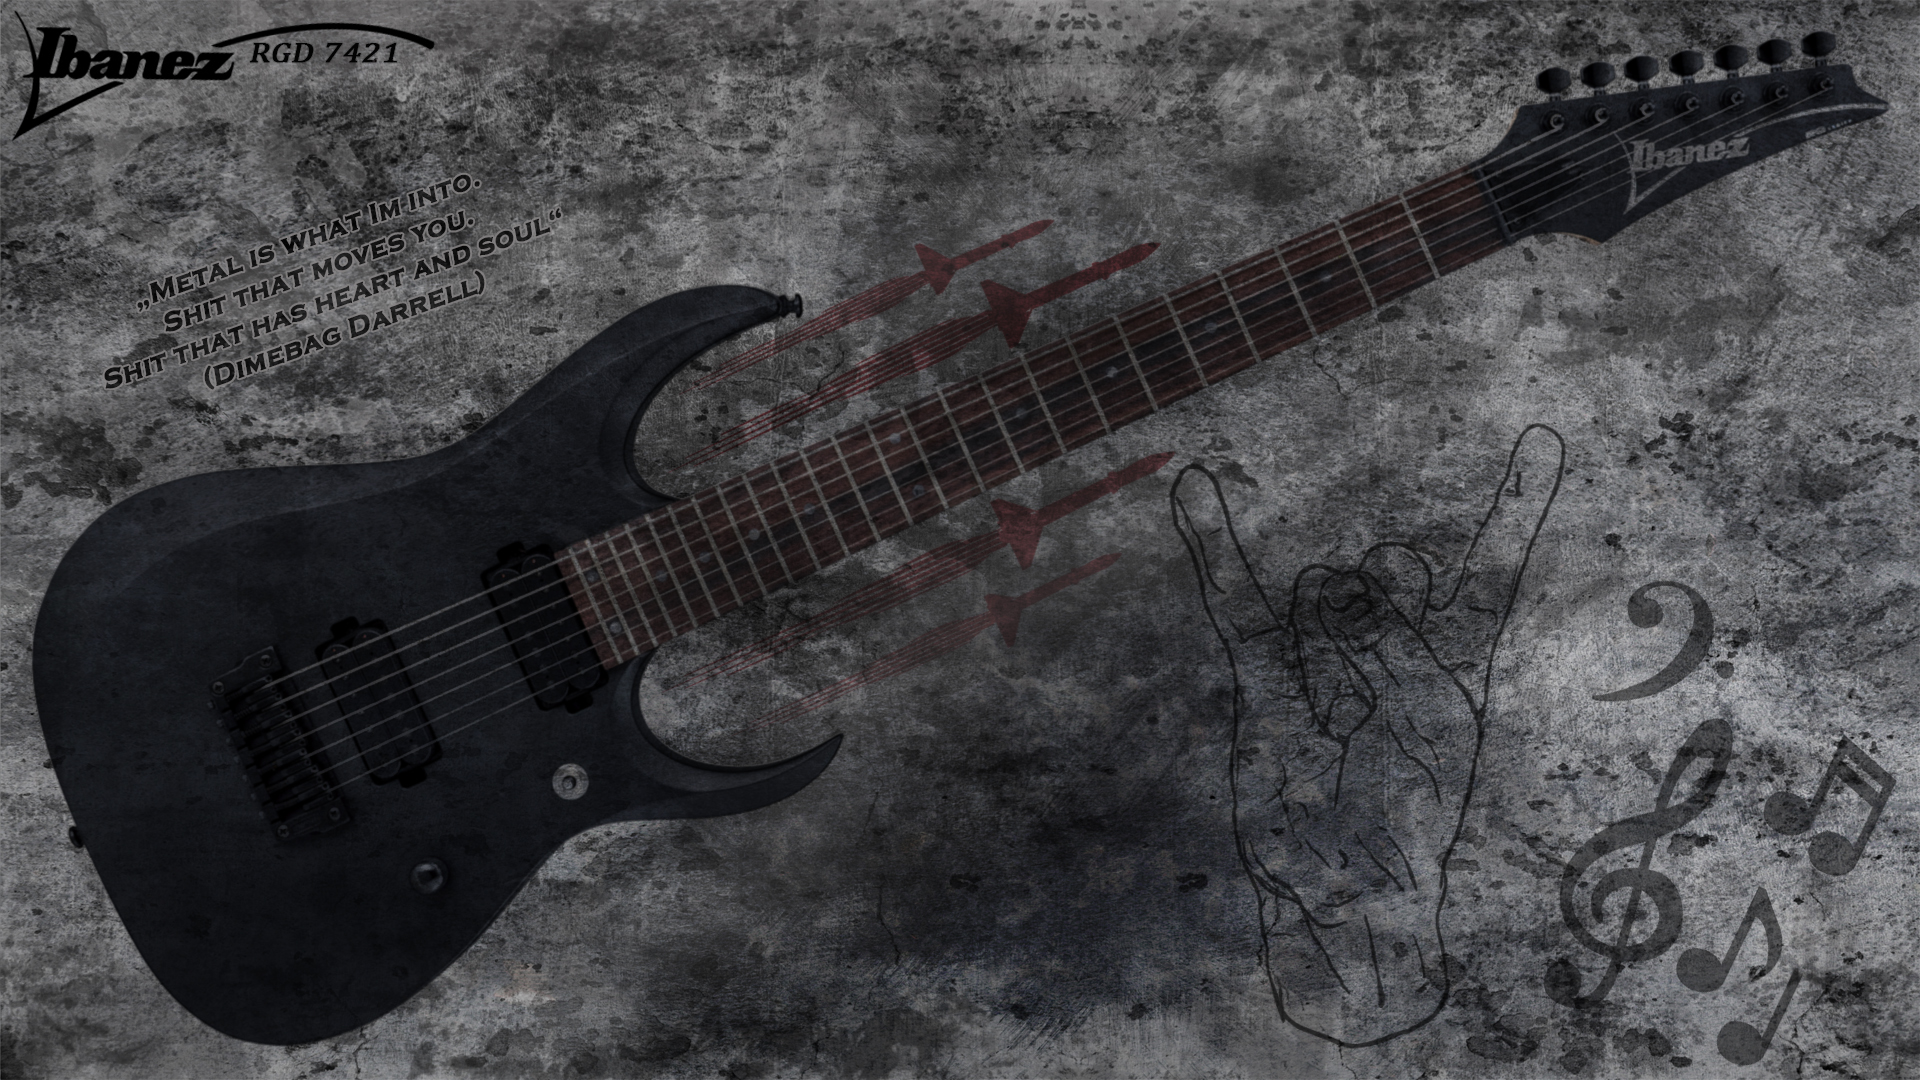 ibanez rgd 7421 e guitar wallpaper 2 by jaxxtraxx on deviantart